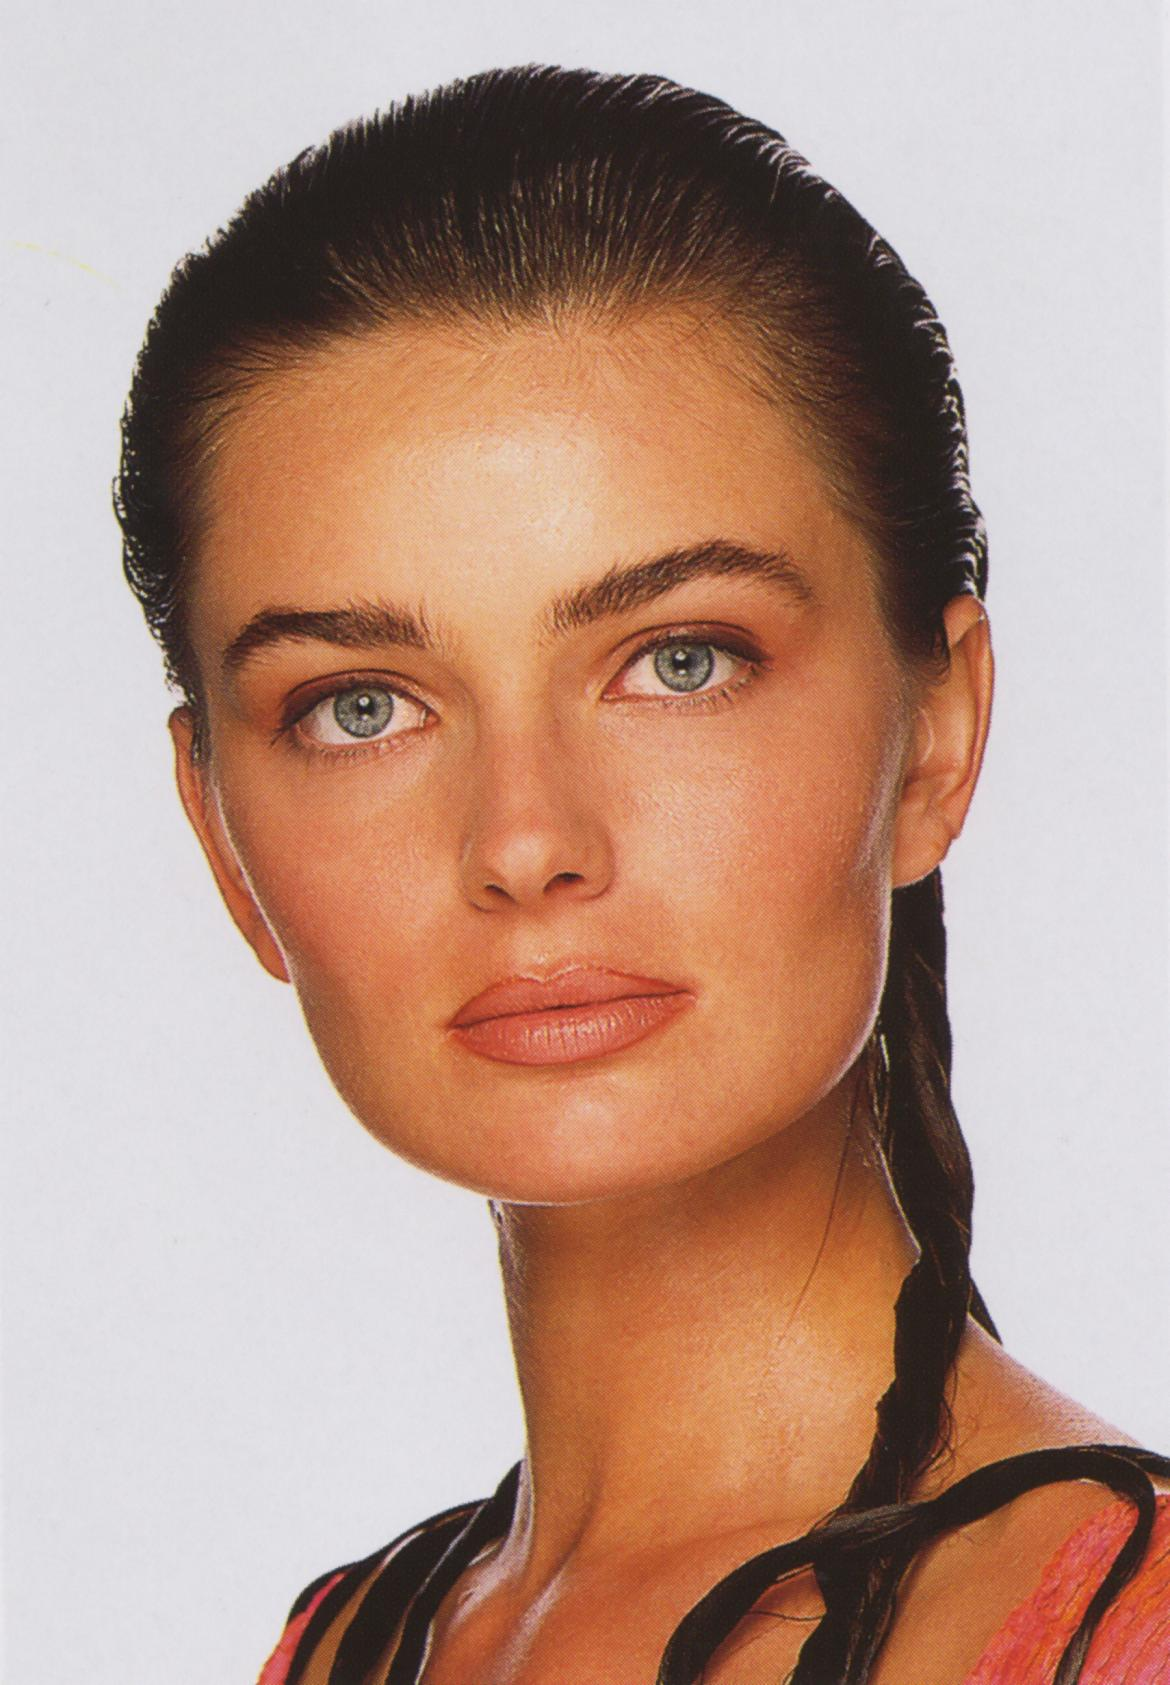 Paulina Porizkova photo gallery - high quality pics of ... Angelina Jolie Children